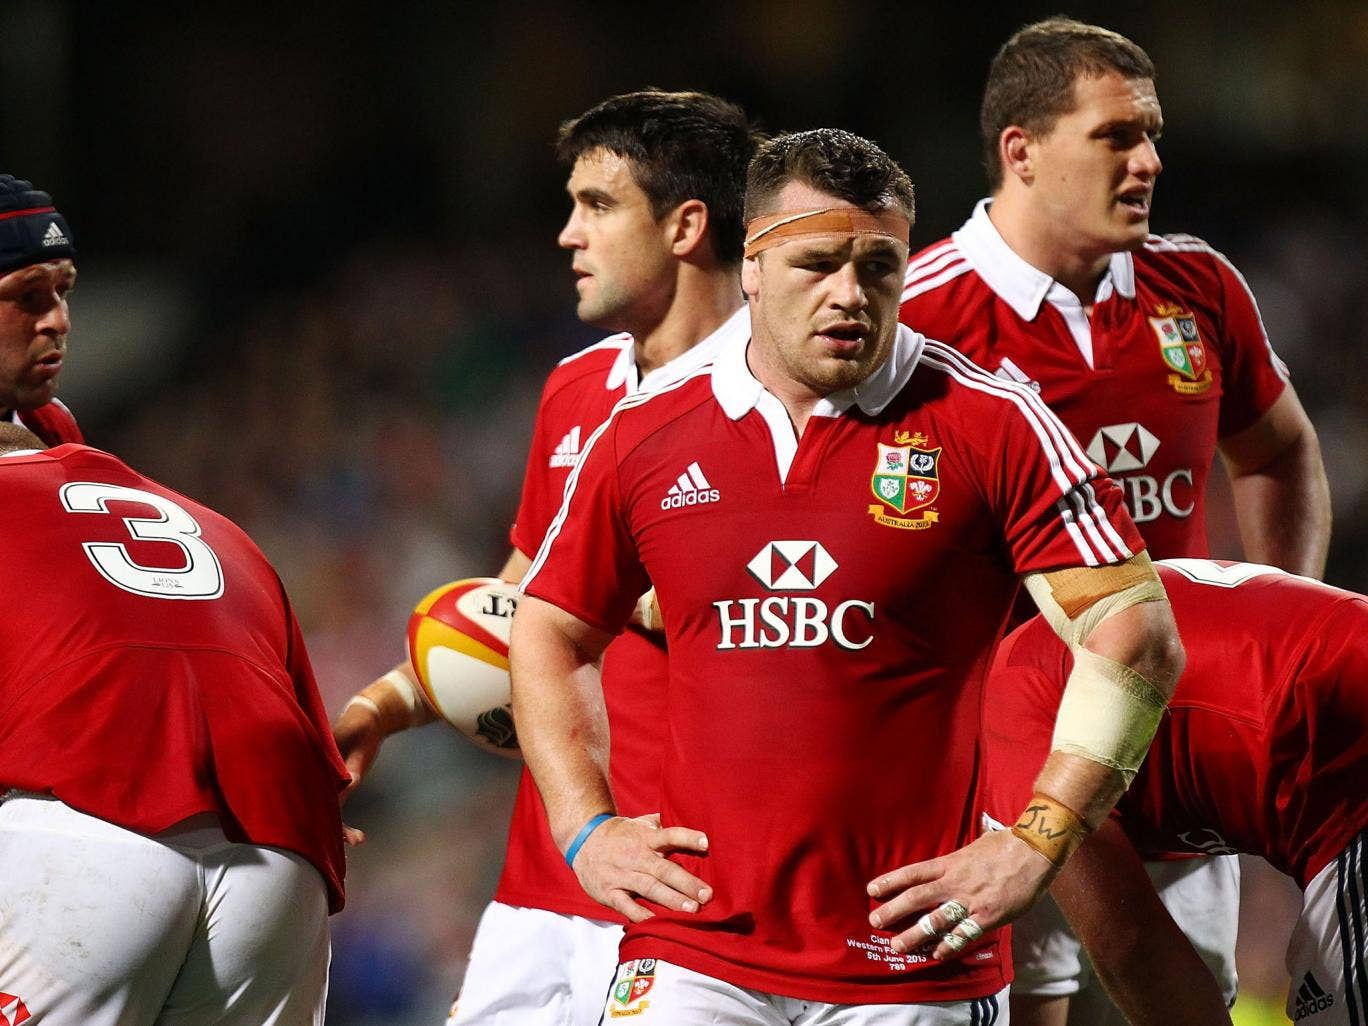 Cian Healy during his eventful outing against Western Force